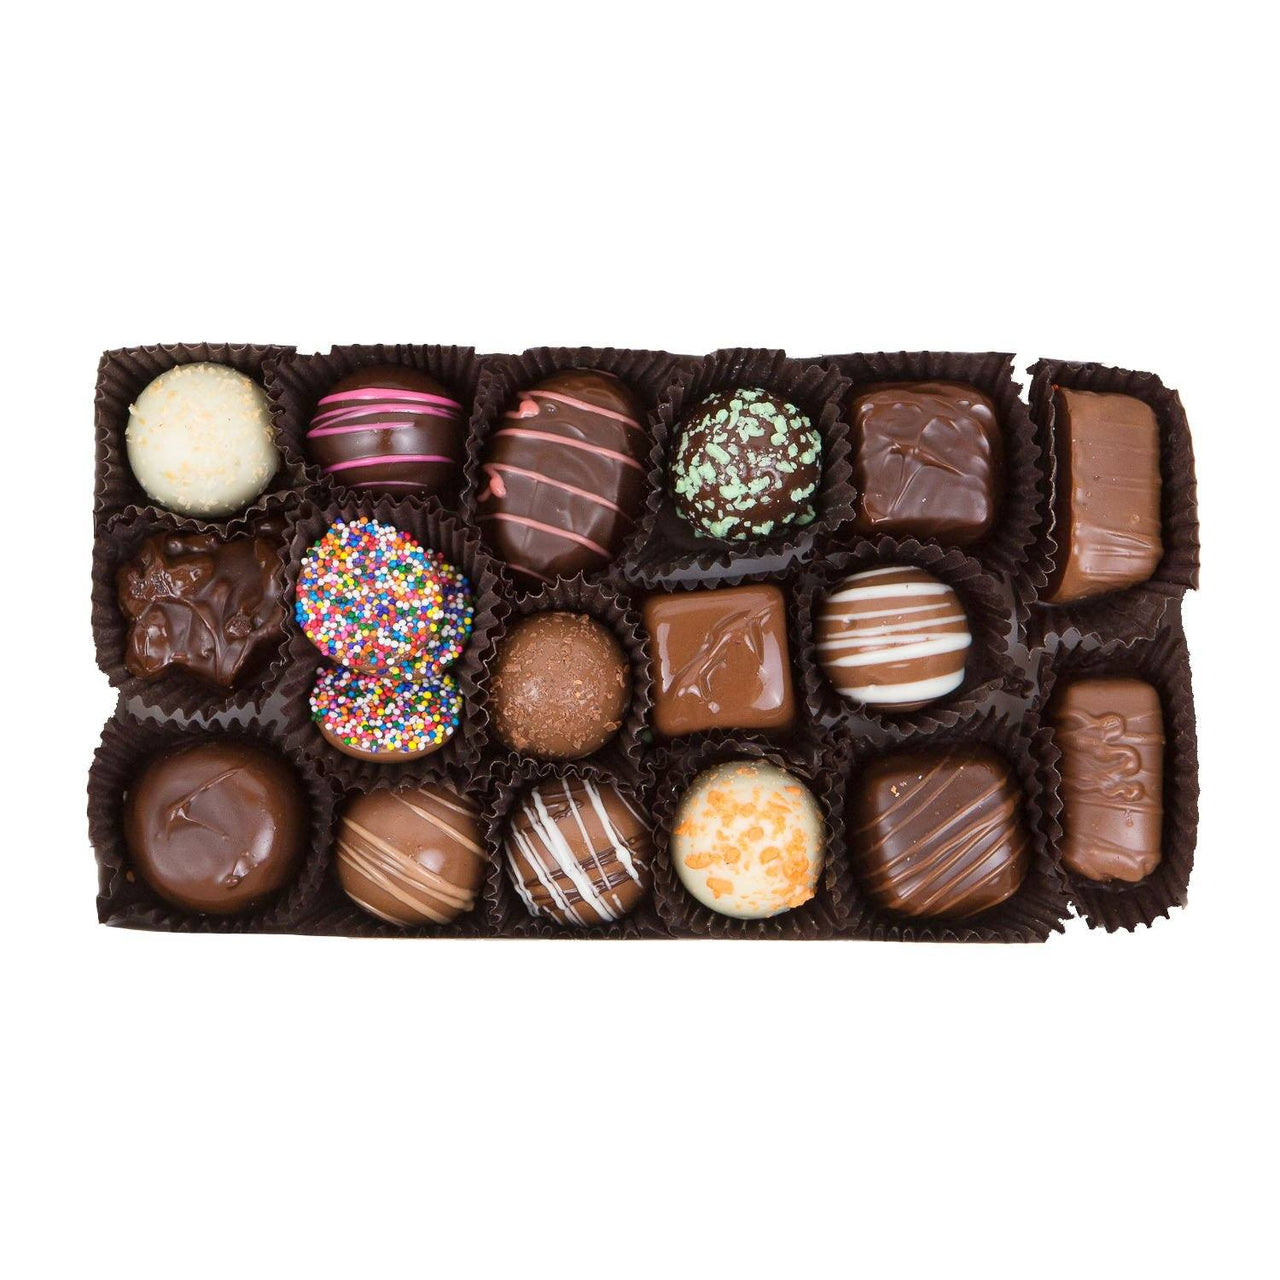 Secret Santa Ideas - Chocolate Assortment Gift Box - Jackie's Chocolate (4336363896947)